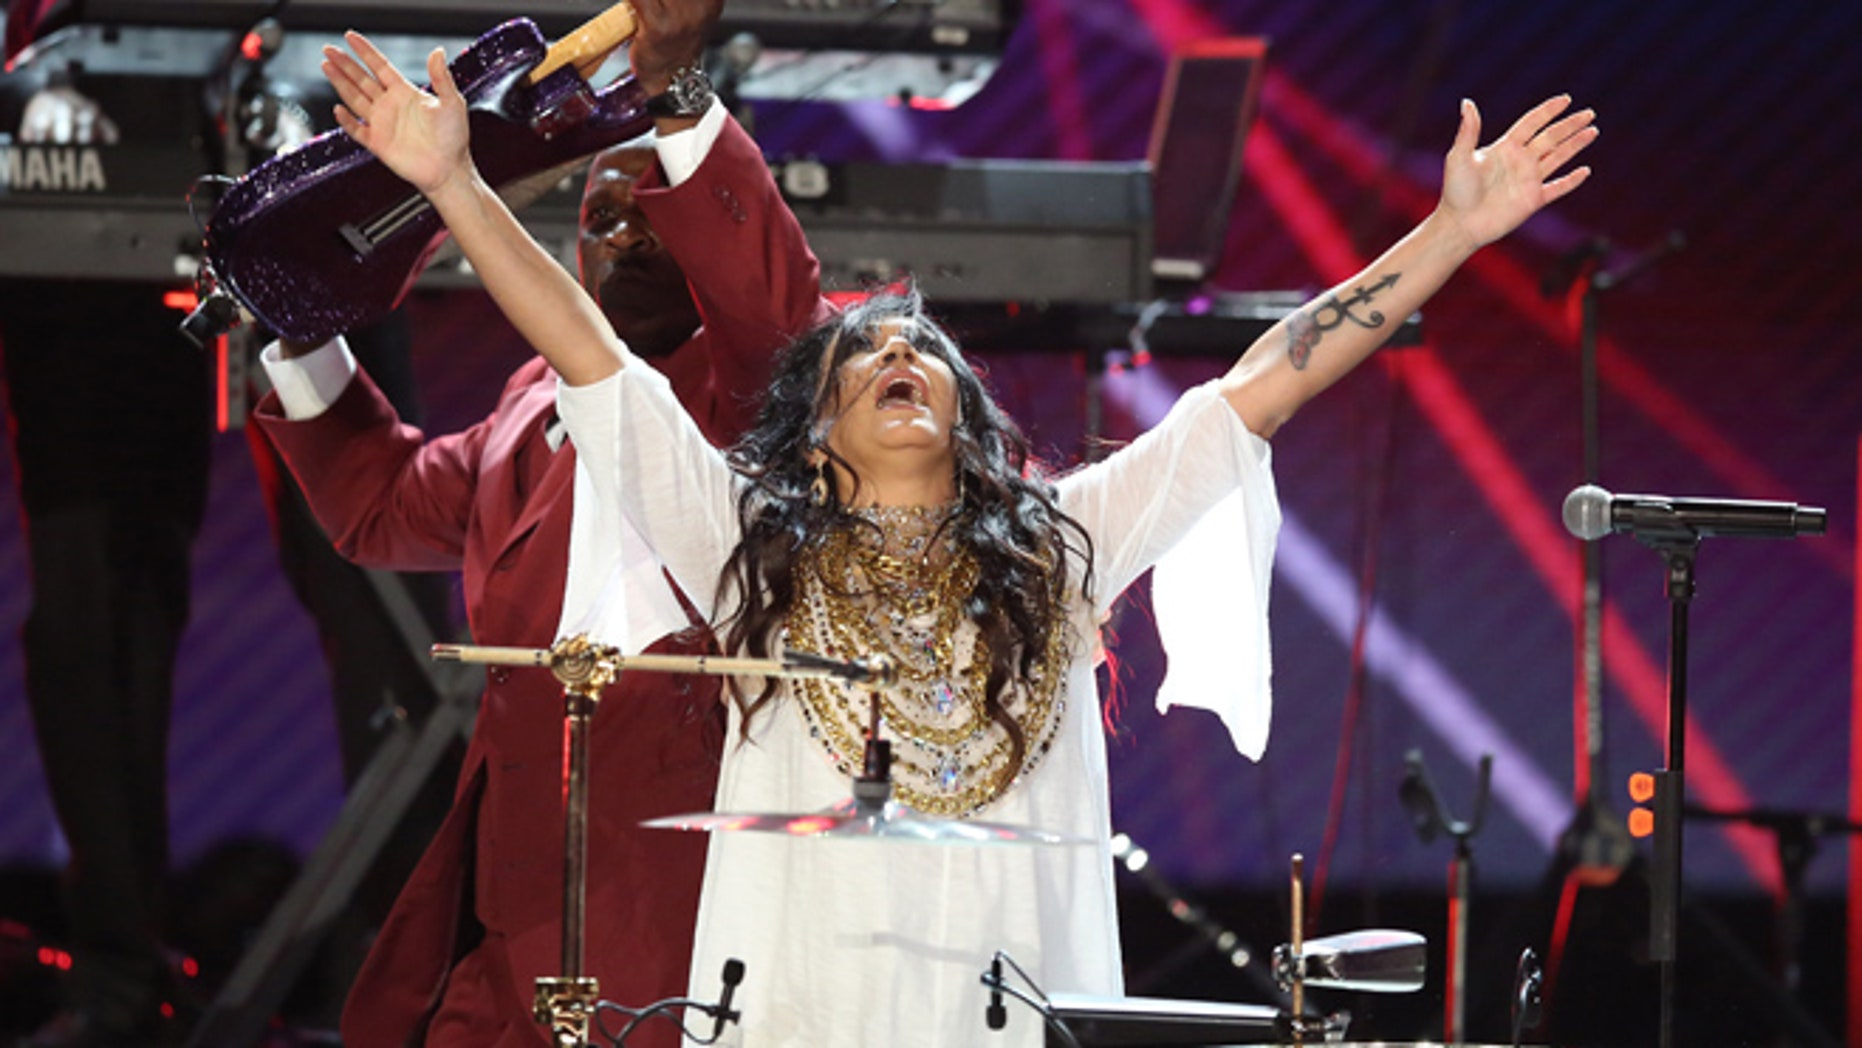 Sheila E. performs a tribute to Prince at the BET Awards at the Microsoft Theater on Sunday, June 26, 2016, in Los Angeles. (Photo by Matt Sayles/Invision/AP)